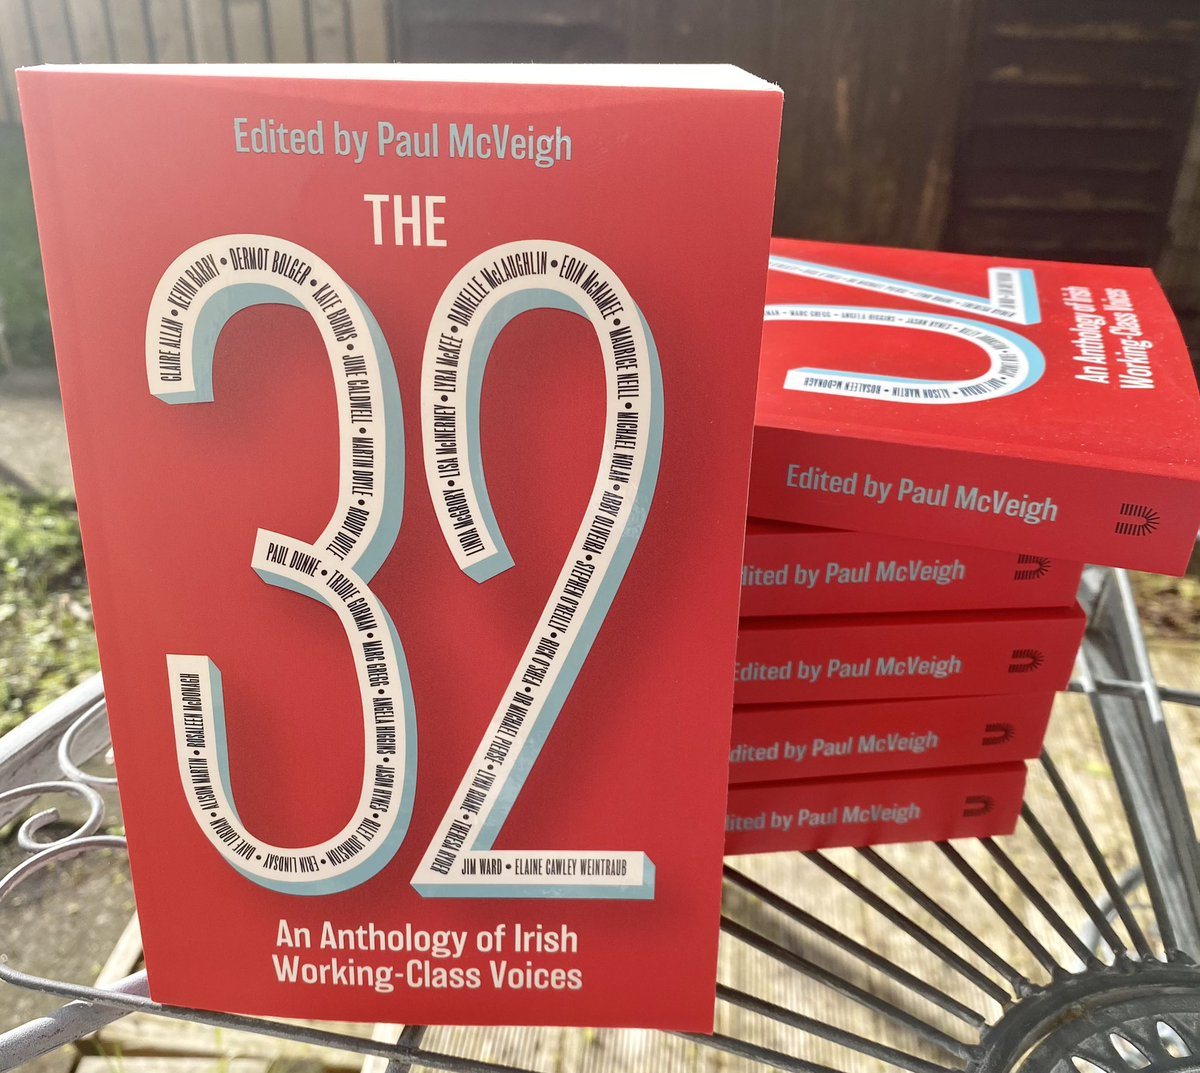 They're here! 'The 32: An Anthology of Irish Working Class Voices' available to pre-order now & in shops from July 8th. Sister of #commonpeople brainchild of @KitdeWaal 16 new writers alongside 16 of the great & the good sharing stories of working class life! #acnisupported https://t.co/WjPT4lioom